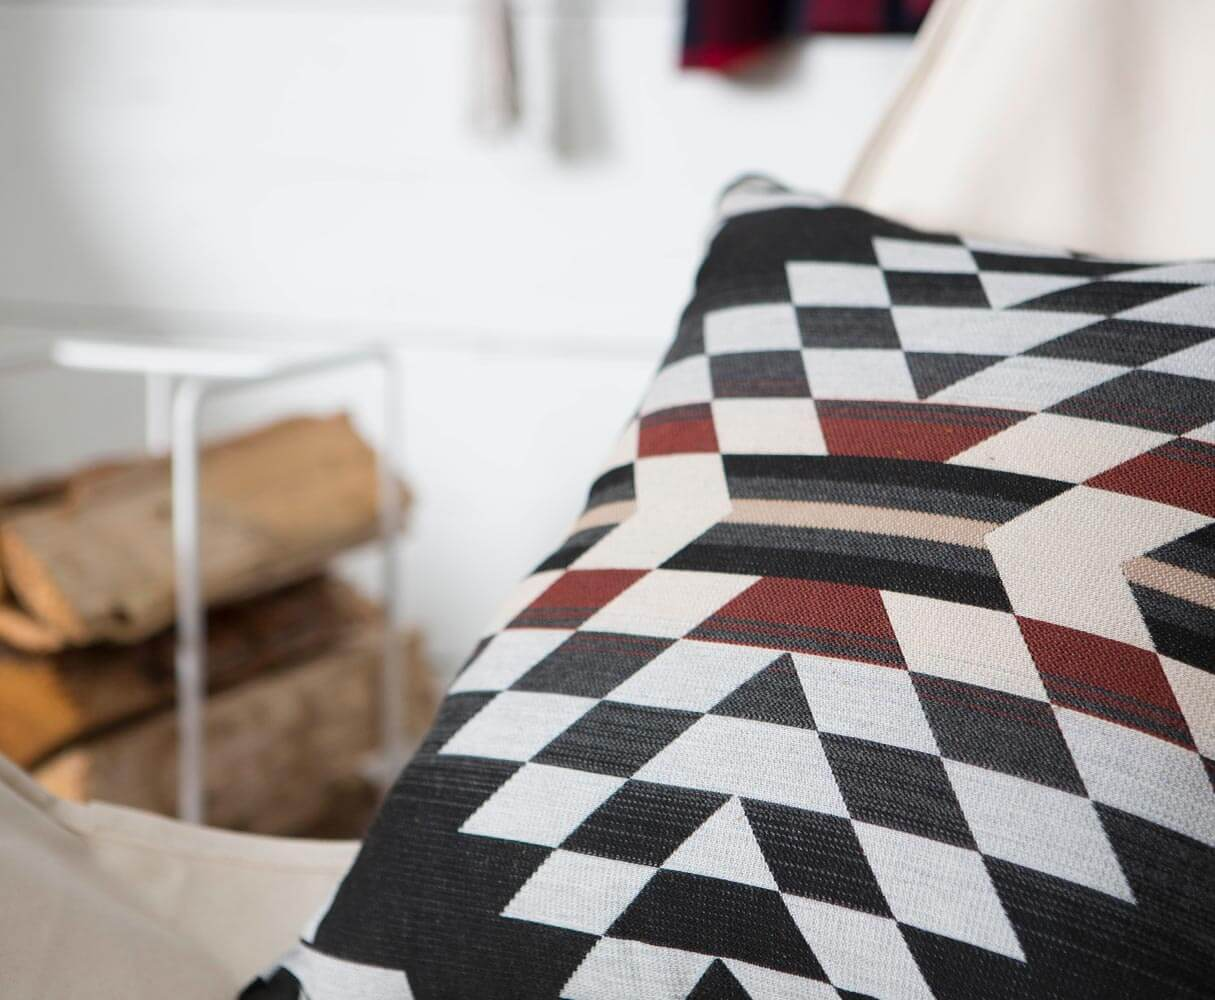 Close up view of a black and red patterned Pendleton by Sunbrella fabric.